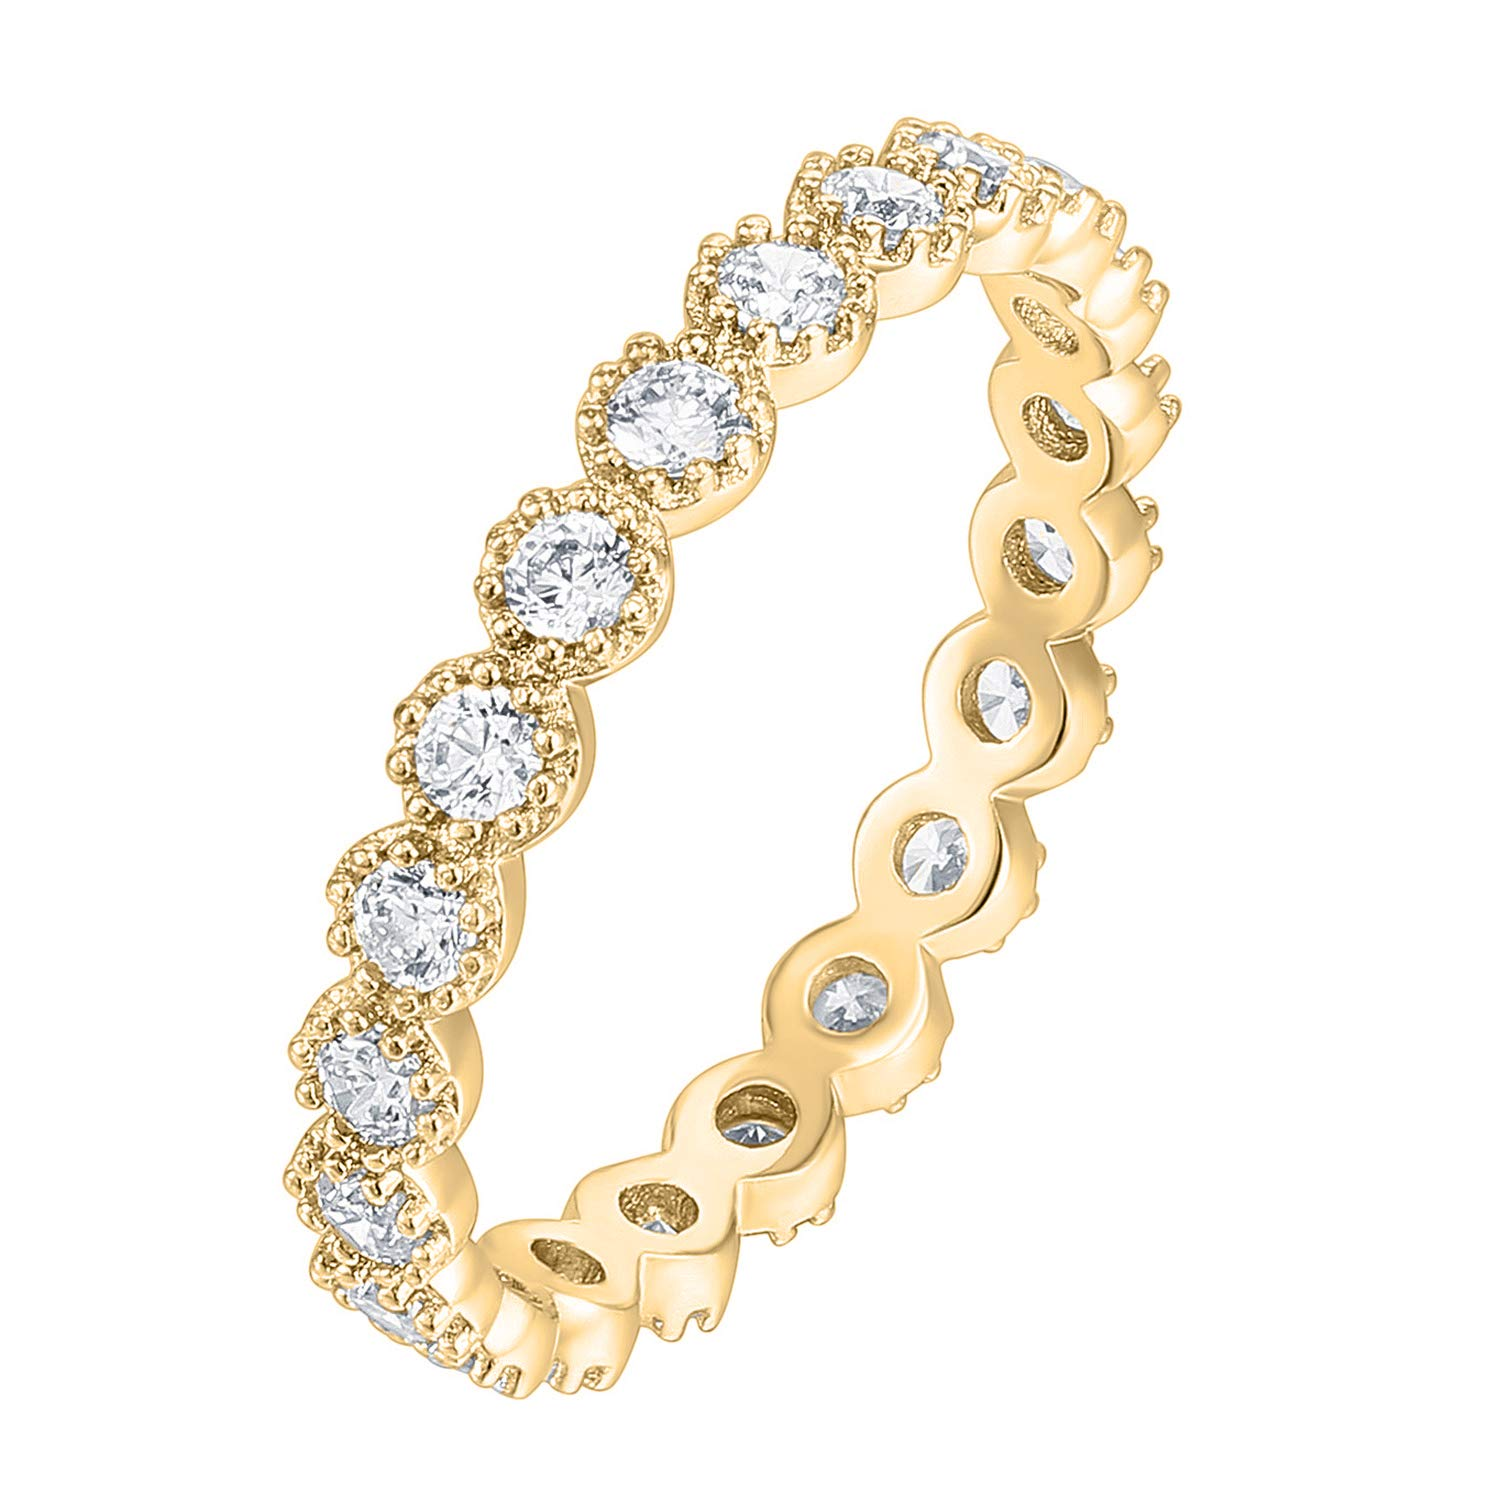 PAVOI 14K Gold Plated Sterling Silver Rings Cubic Zirconia Band | Marquise Milgrain Eternity Bands | Gold Rings for Women